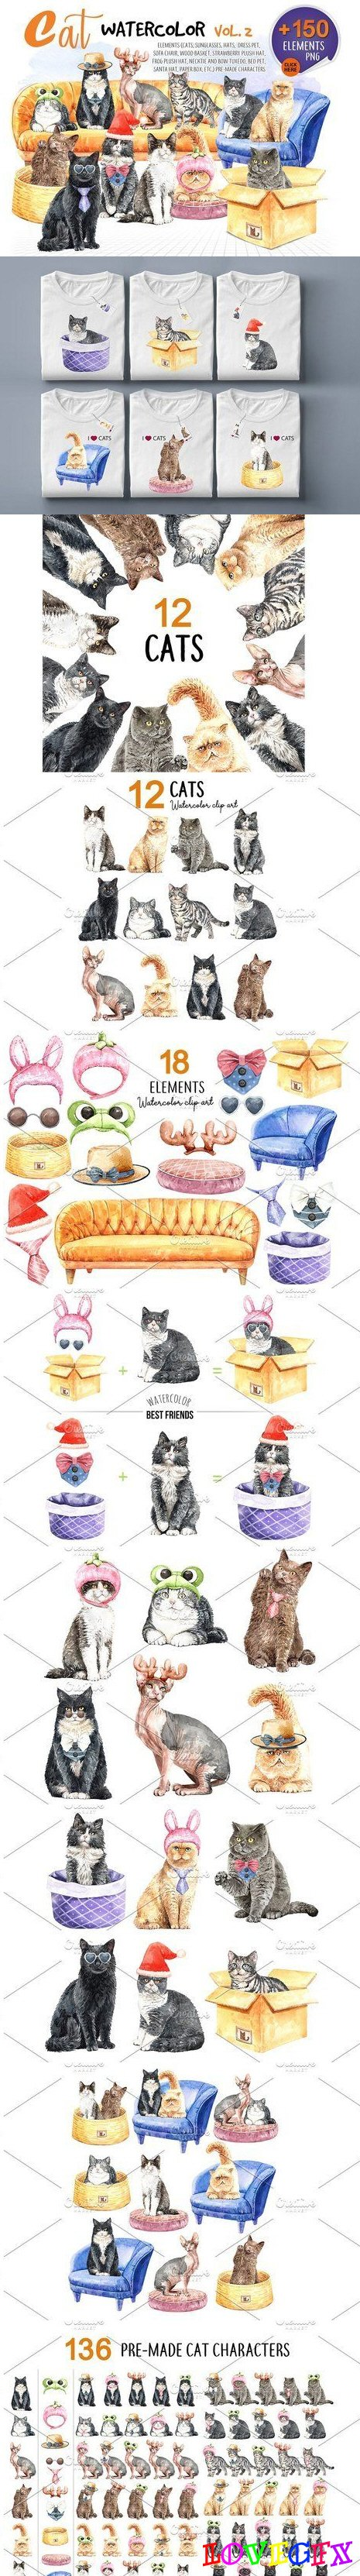 Cats Watercolor Vol 2. Pet Clip Art - 4443095